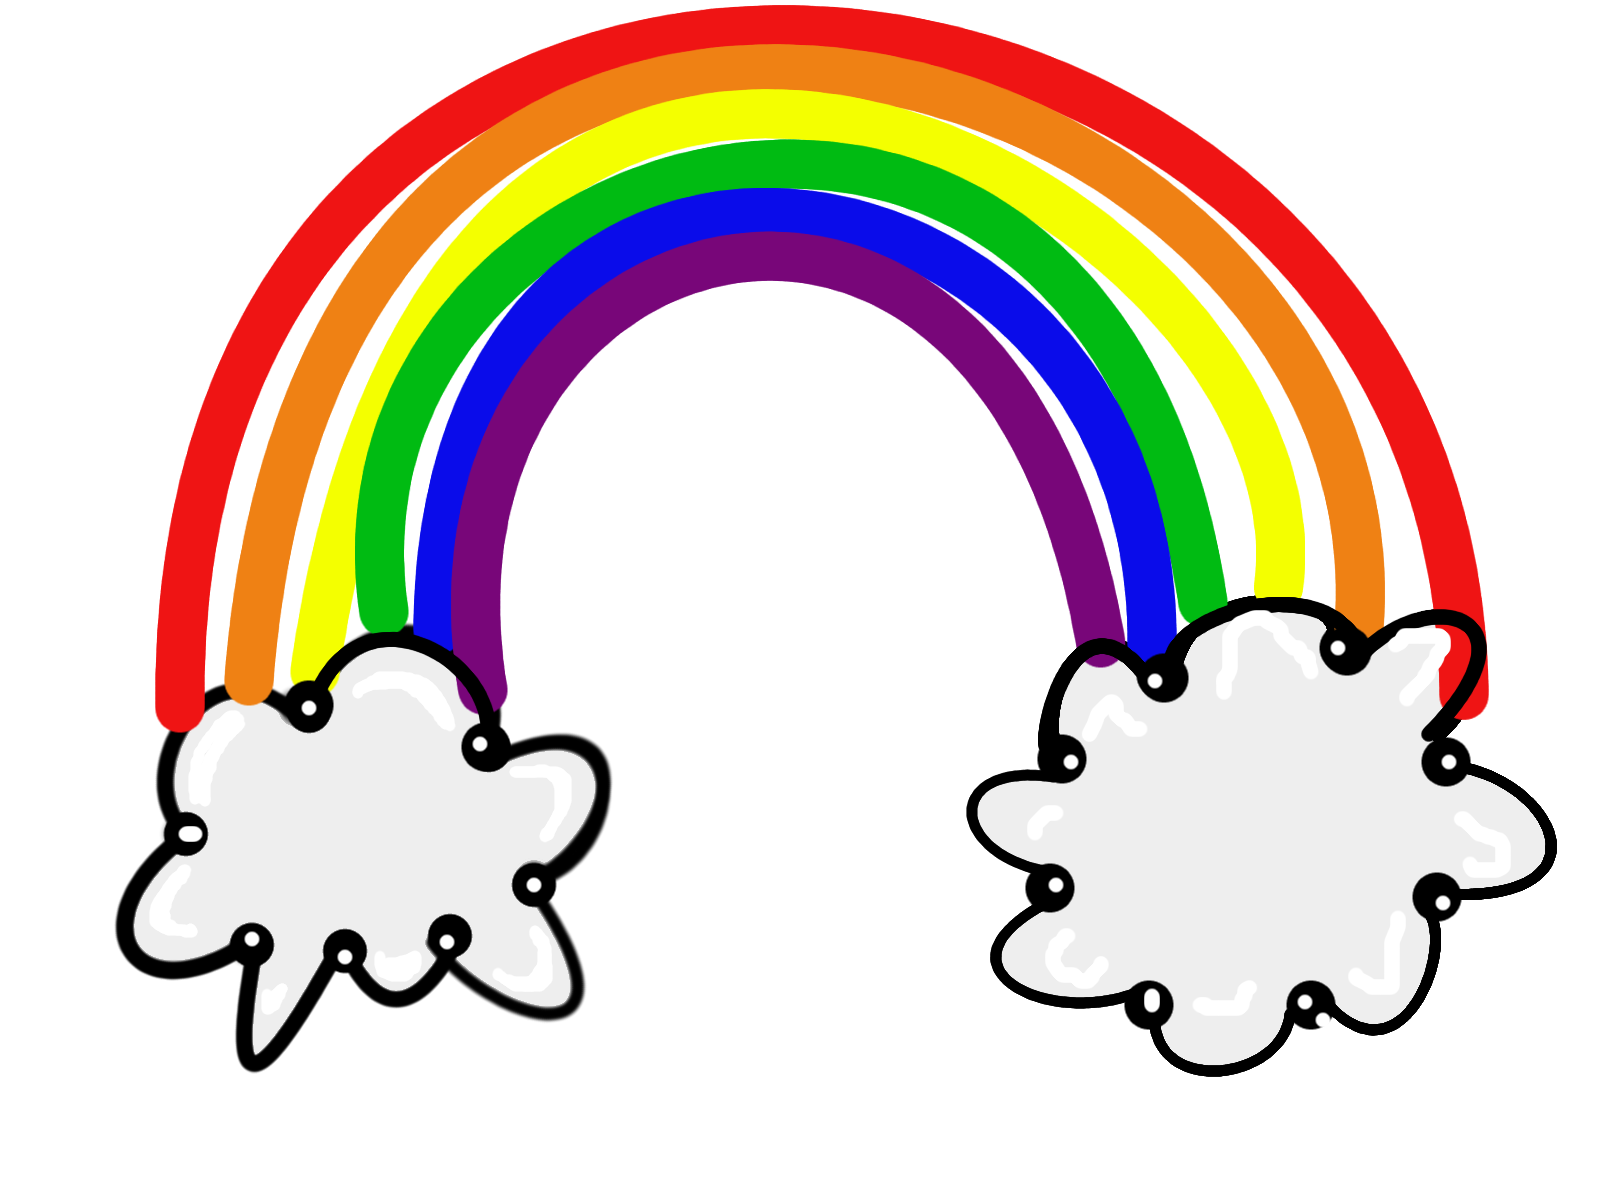 1600x1200 Rainbow Clipart For Kids Free Images 2